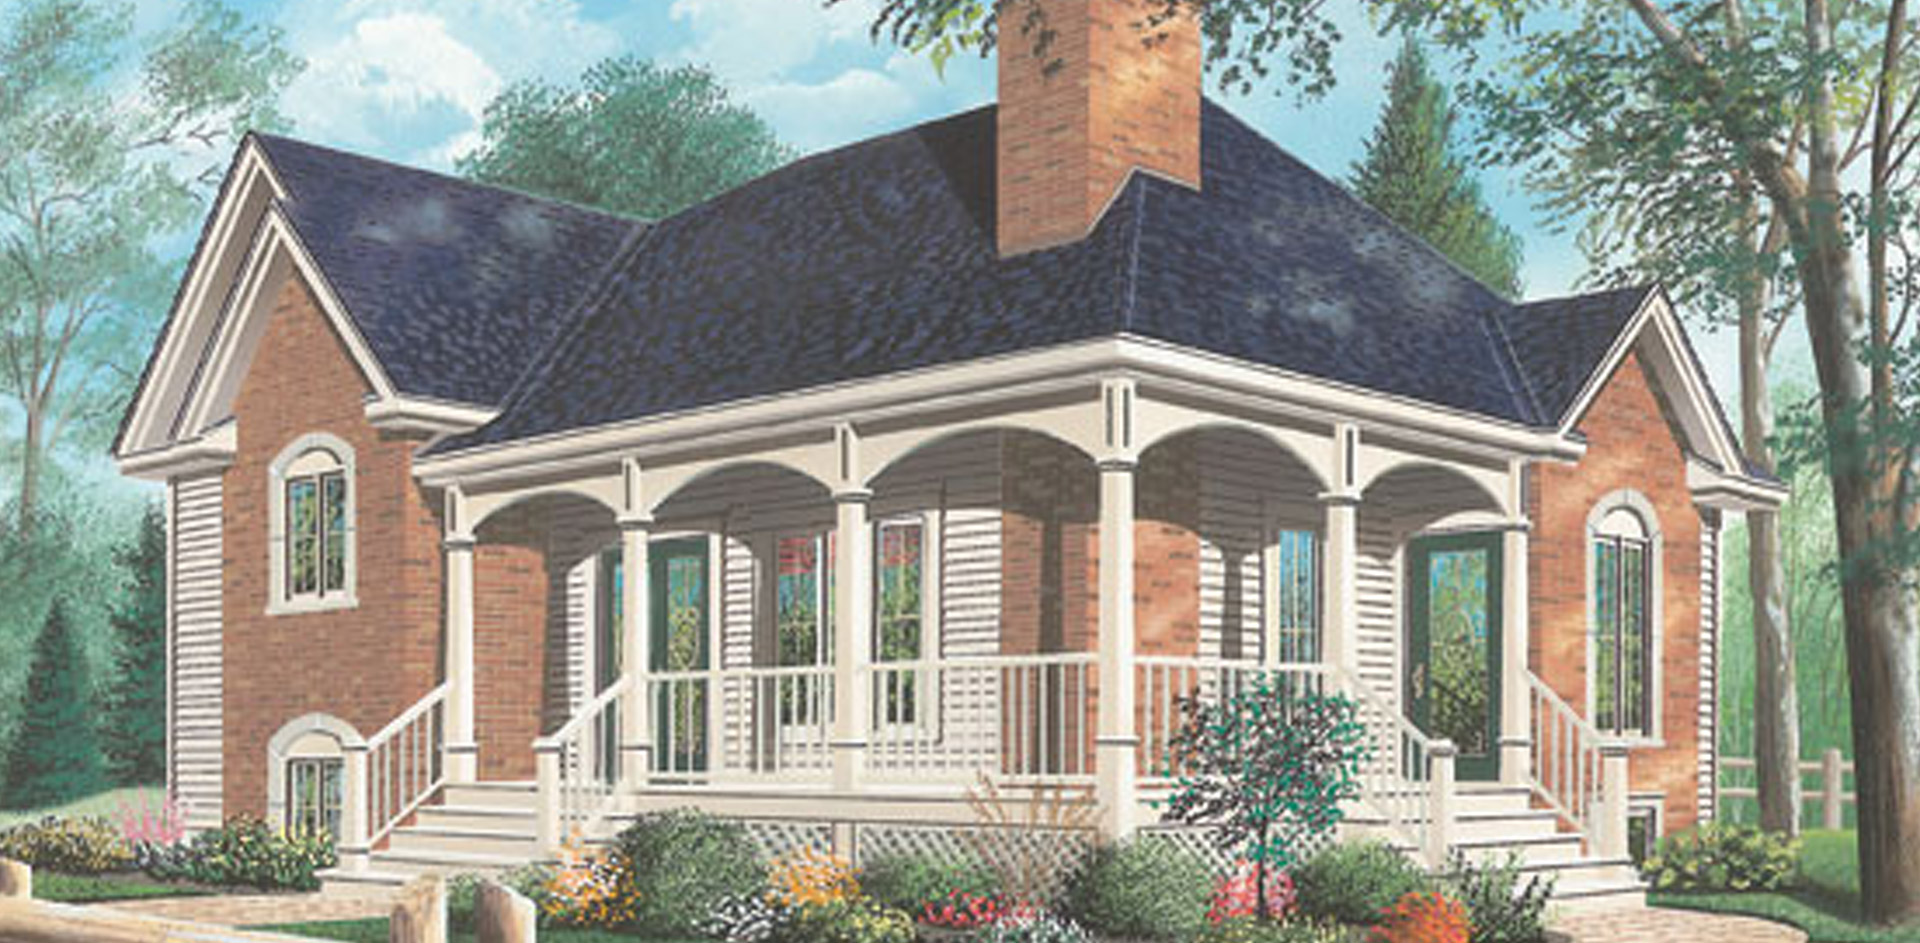 1337 sq.ft. timber mart house with porch